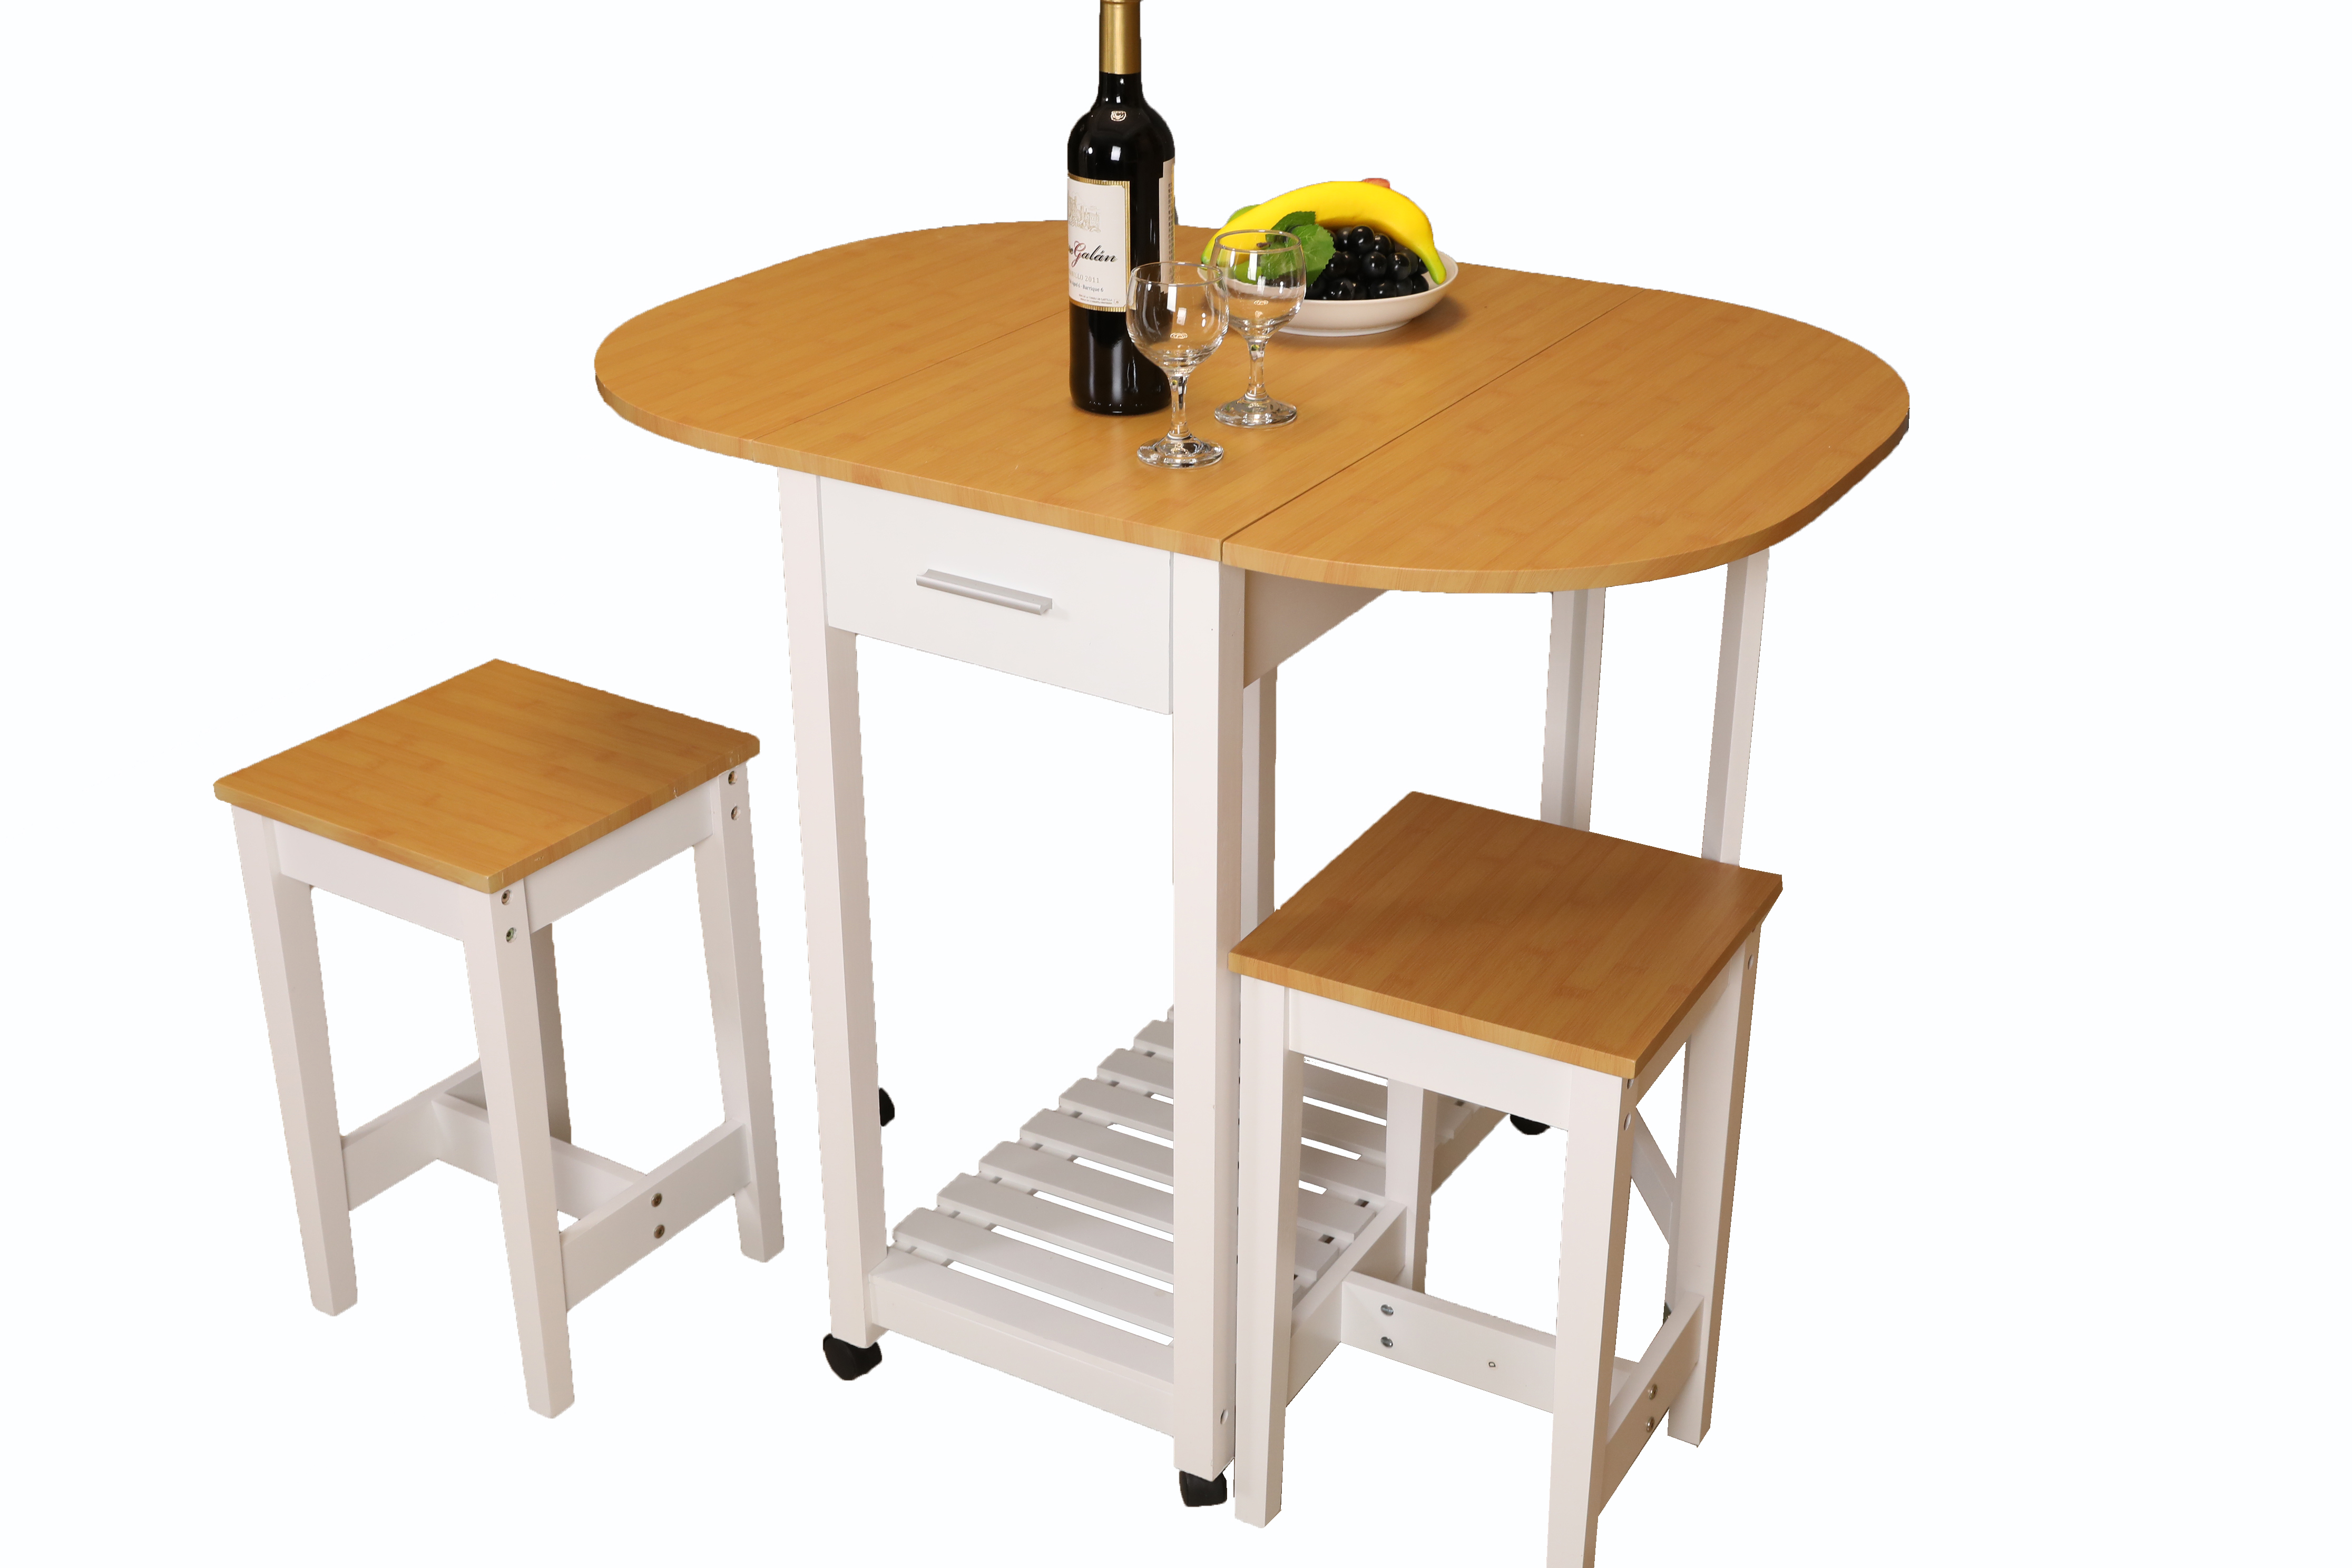 Charmant 3 Piece Kitchen Island Breakfast Bar Set With Casters, Drop Down Island  Table With 2